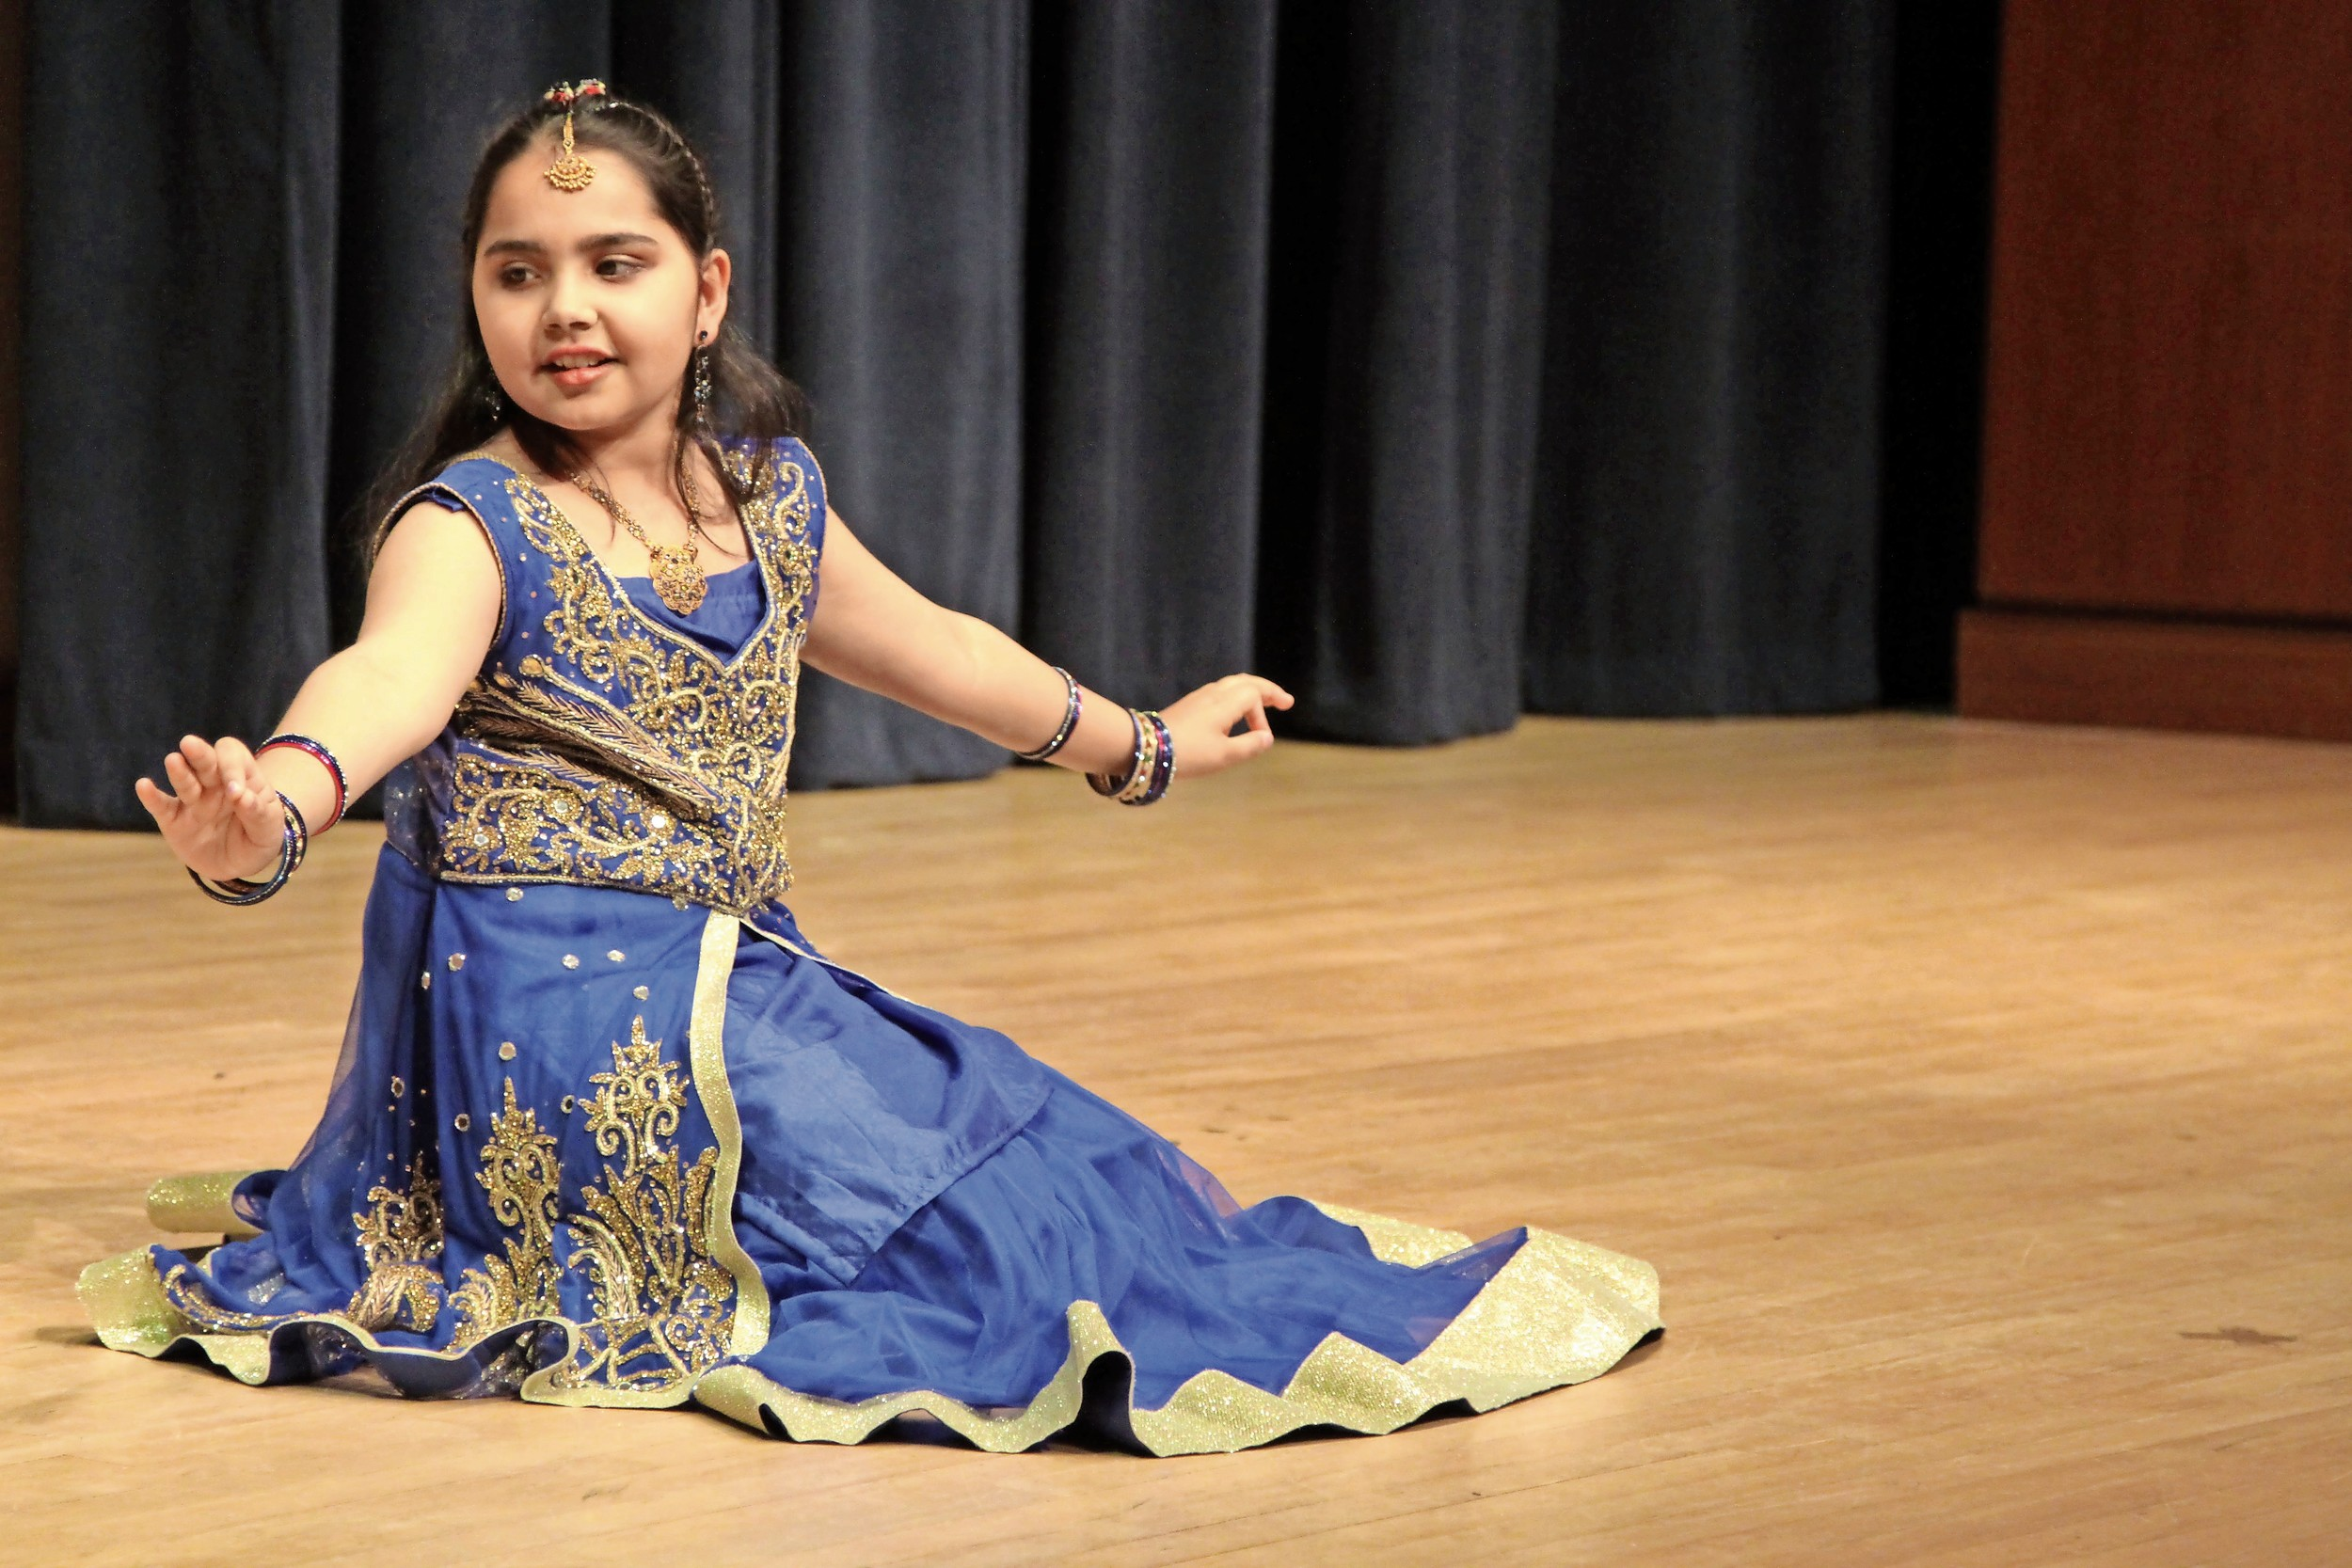 Tara Chaudhry performed the Prem Ratan Dhan Payo dance.